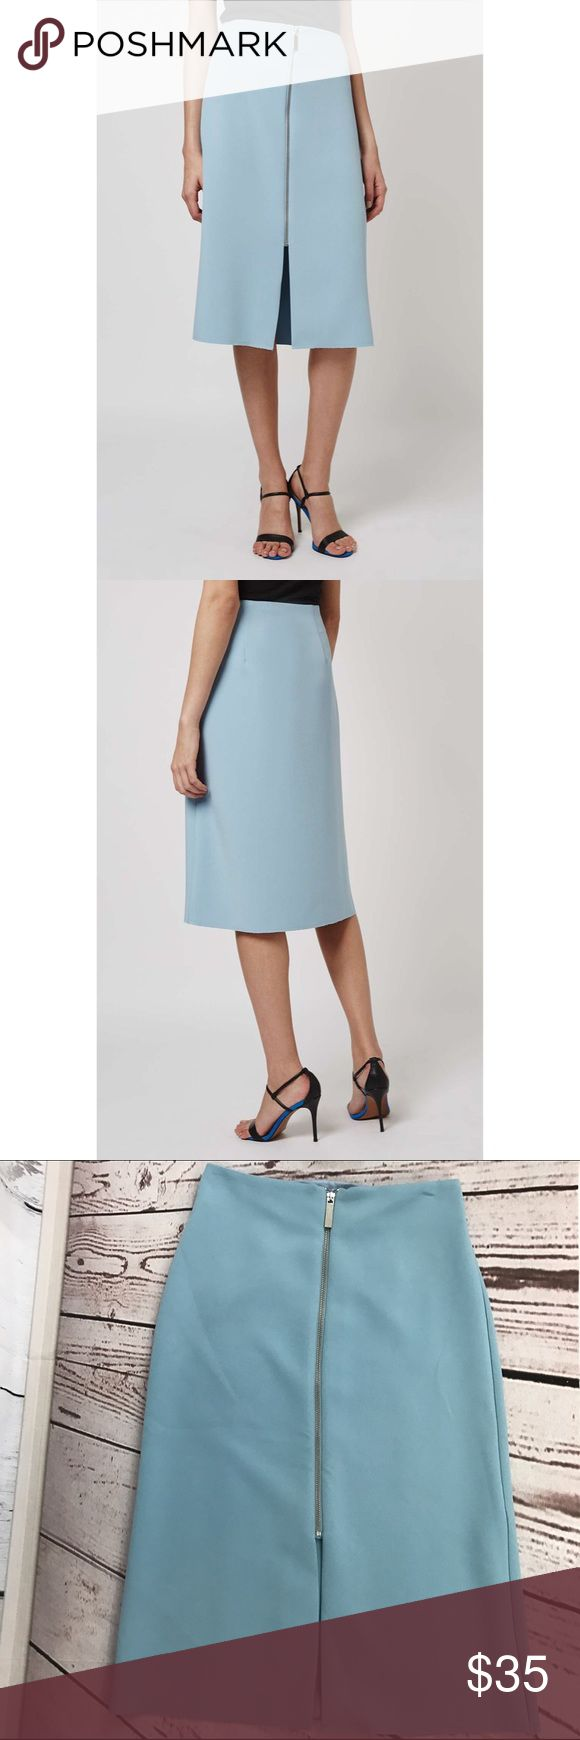 """💜💜 NWT ZIP DETAIL MIDI SKIRT B33 Condition: New but has fraying at hem and marks from the hanger clips  Approximate measurements (laying flat): 13.25"""" Waist 27.25"""" length  Item location: bin 33   **bundles save 10%** no trades/no modeling/no asking for lowest Topshop Skirts Midi"""